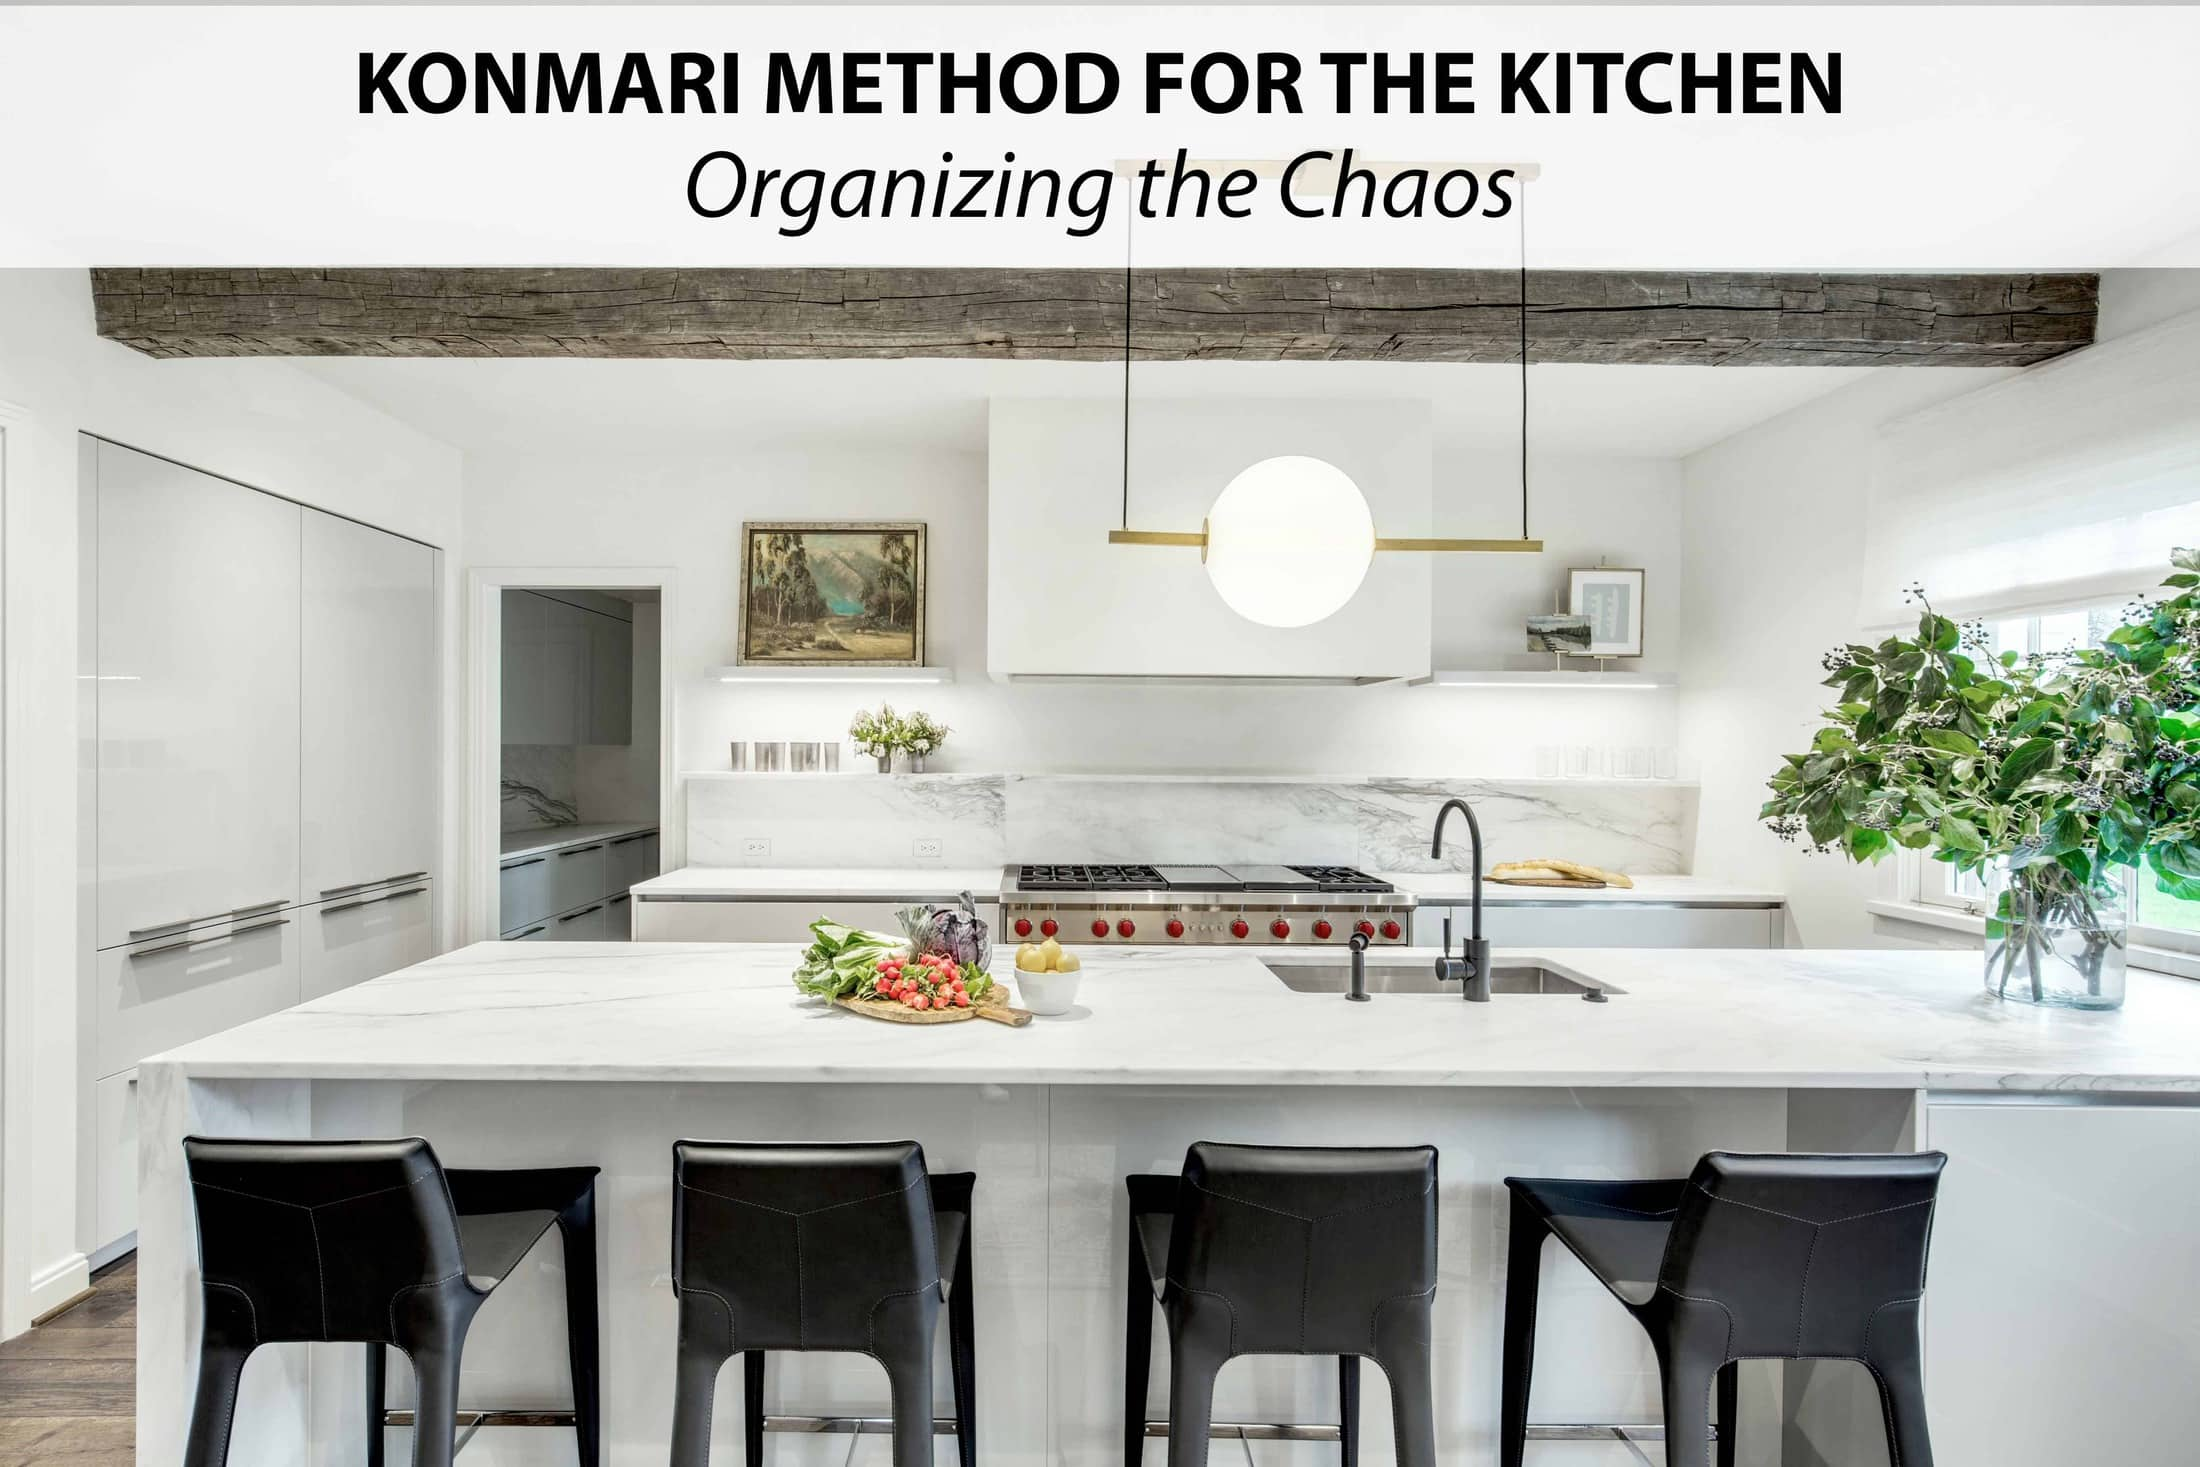 konmari kitchen organizing method